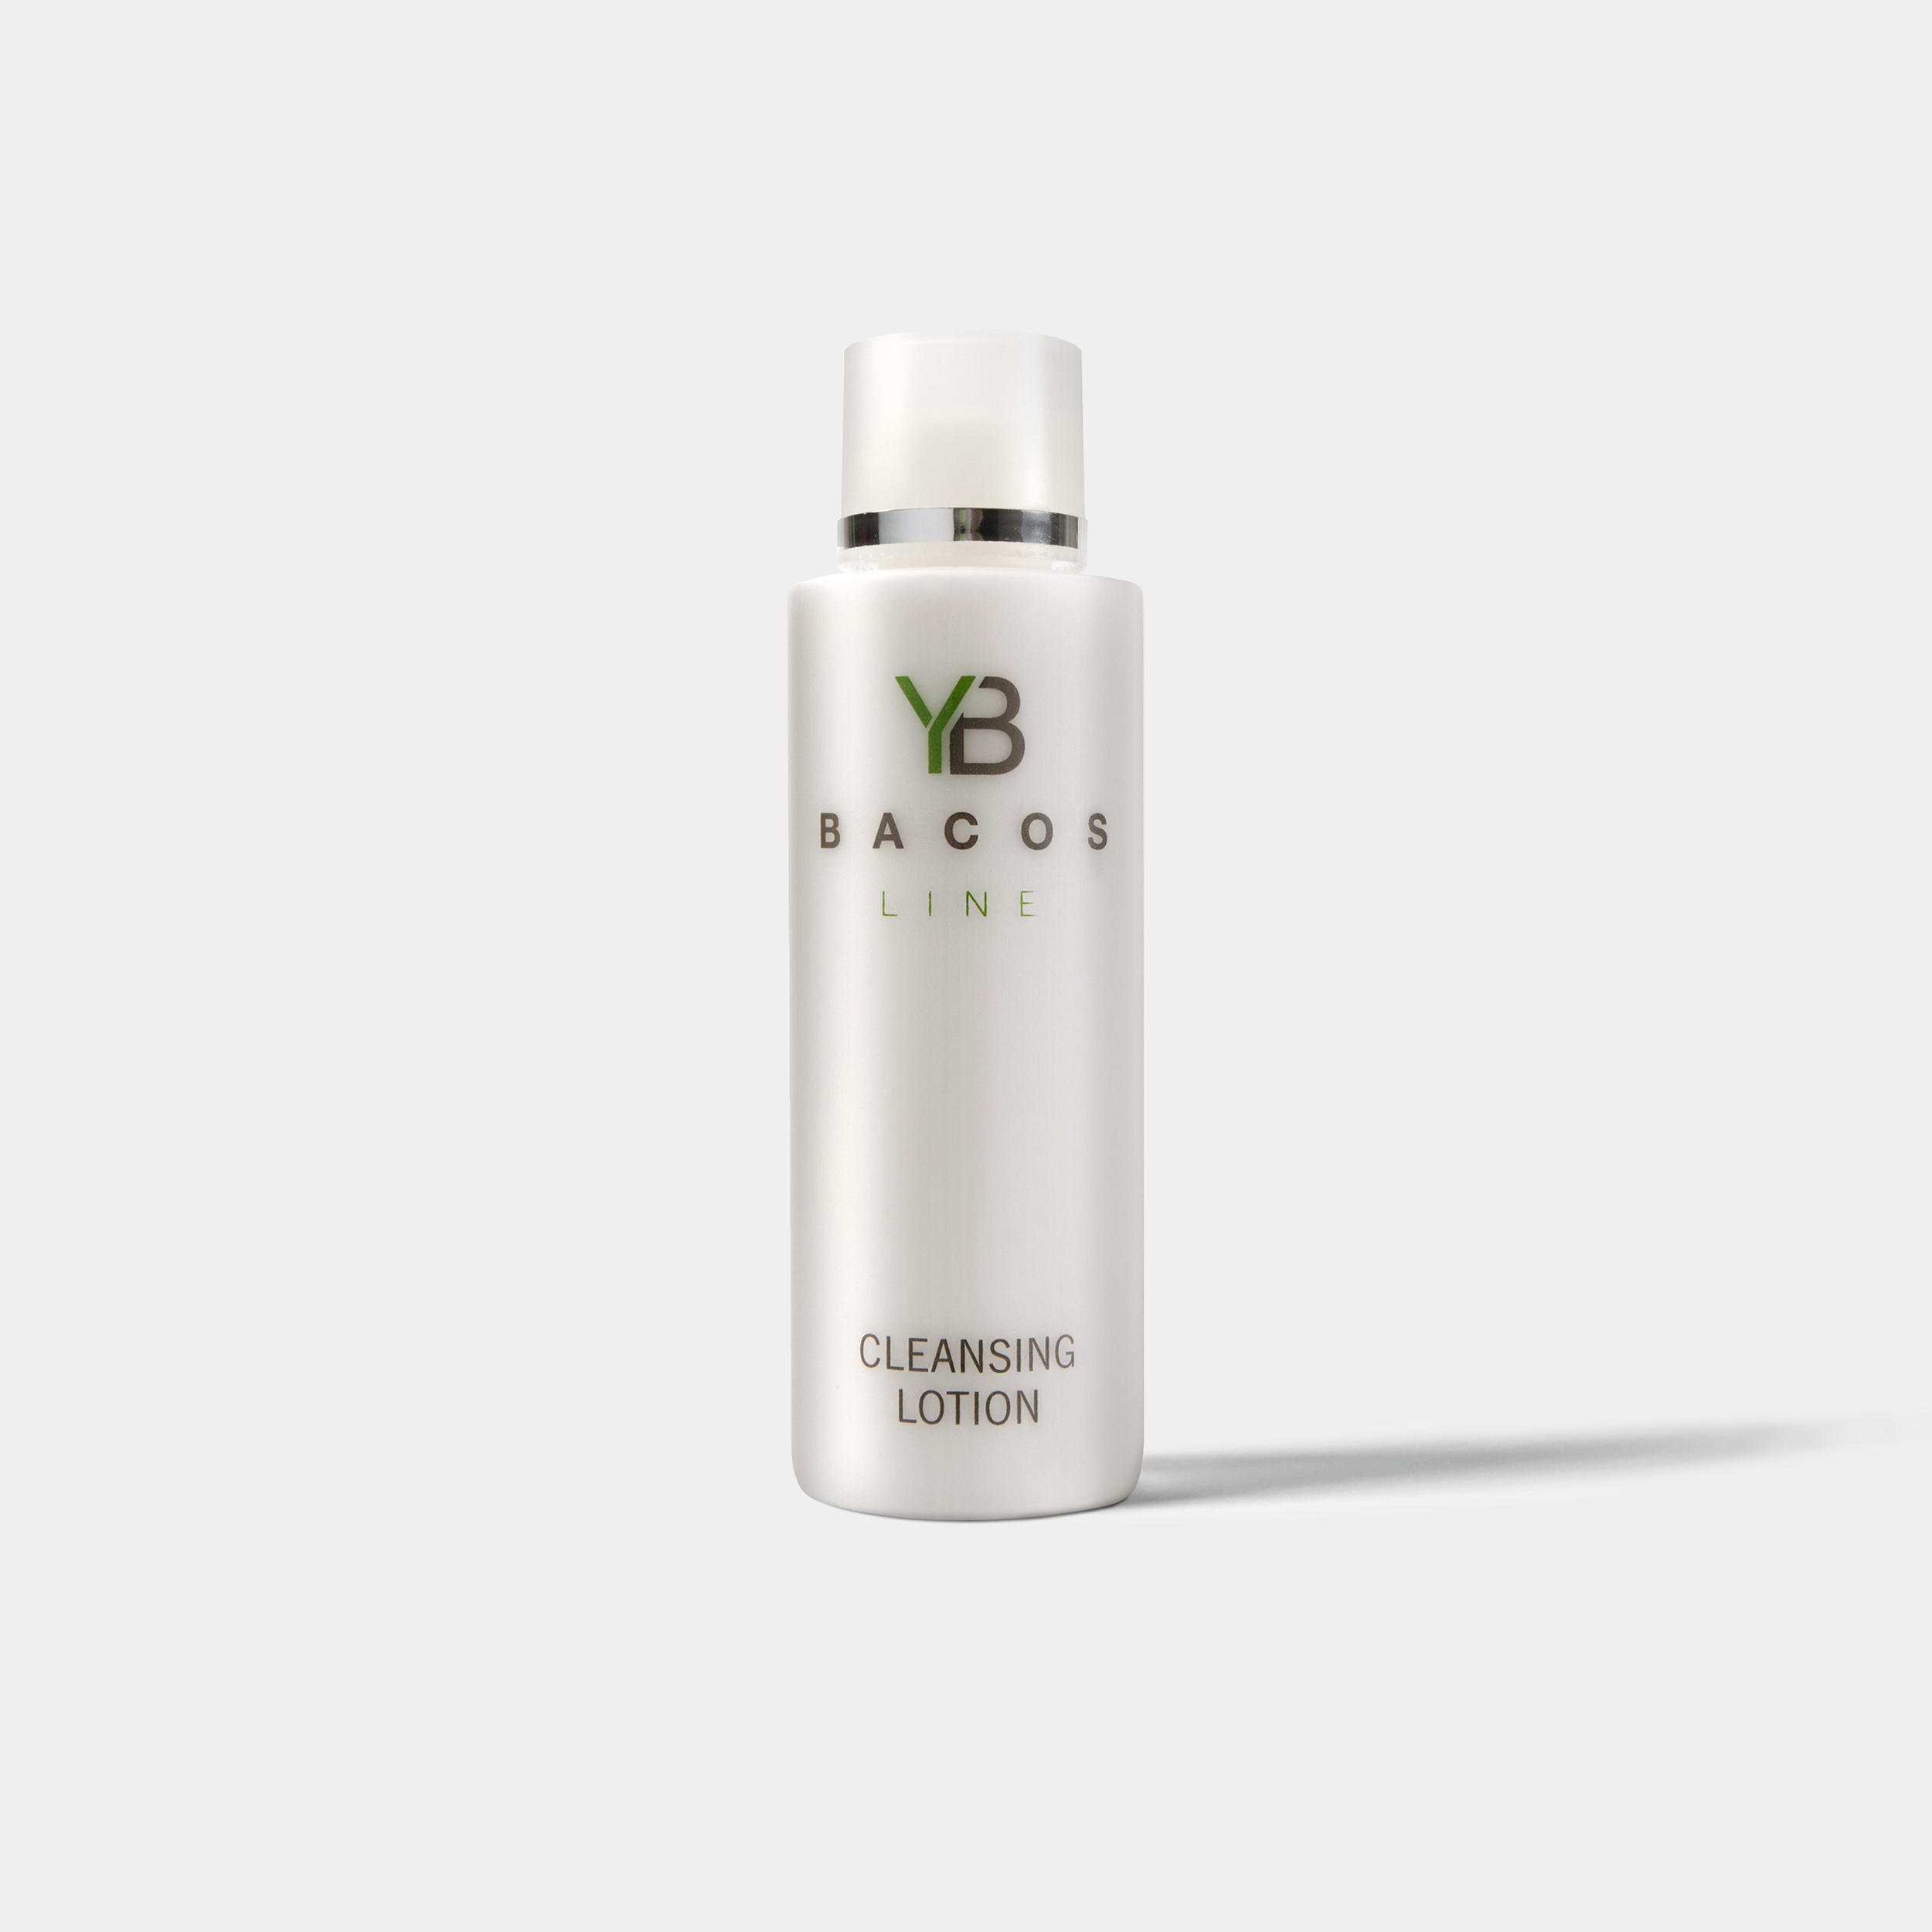 YB BACOS LINE CLEANSING LOTION - 200 ml